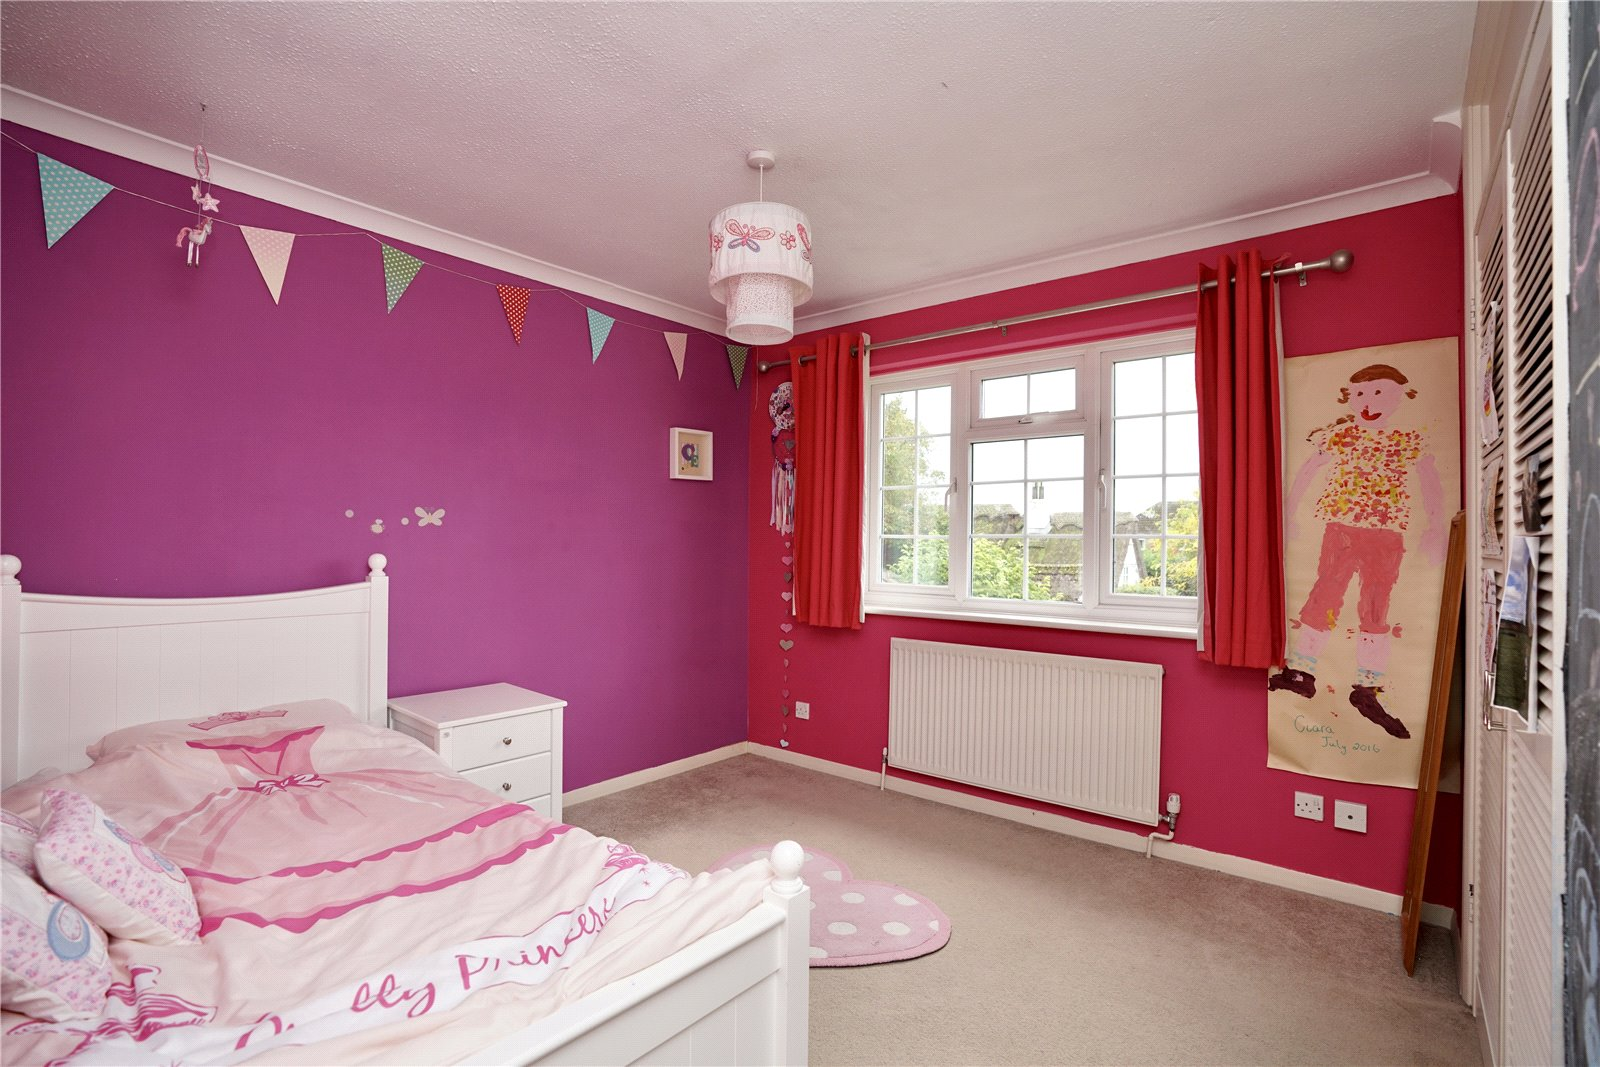 4 bed house for sale in Mint Lane, Great Paxton  - Property Image 12